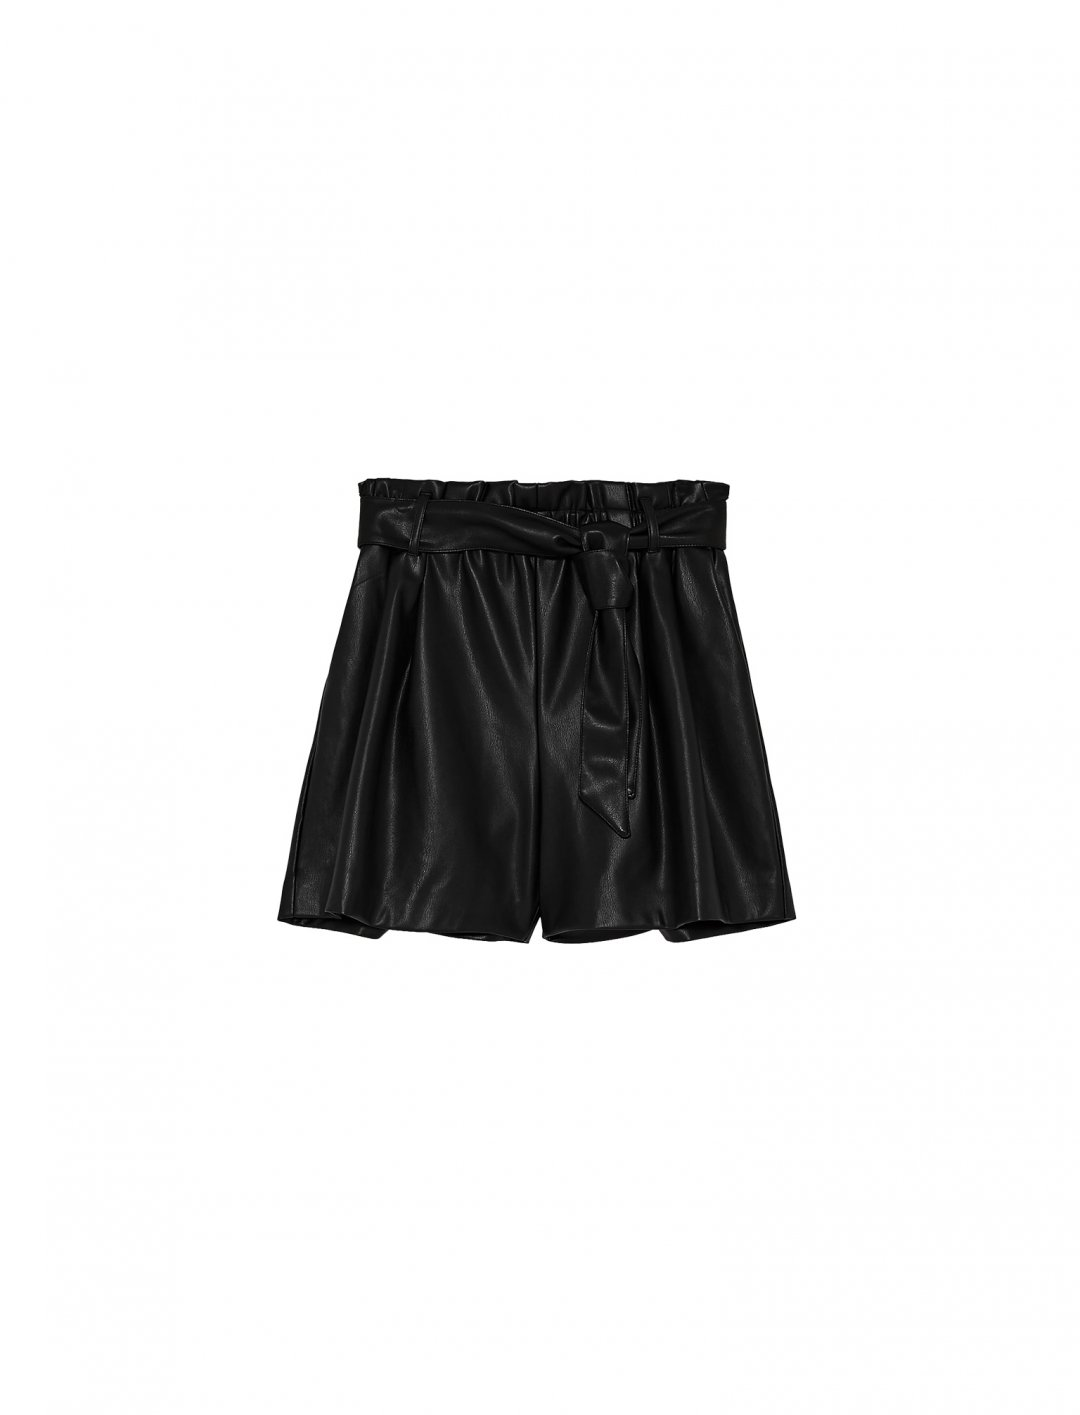 "Zara Leather Bermuda Shorts {""id"":5,""product_section_id"":1,""name"":""Clothing"",""order"":5} Zara"